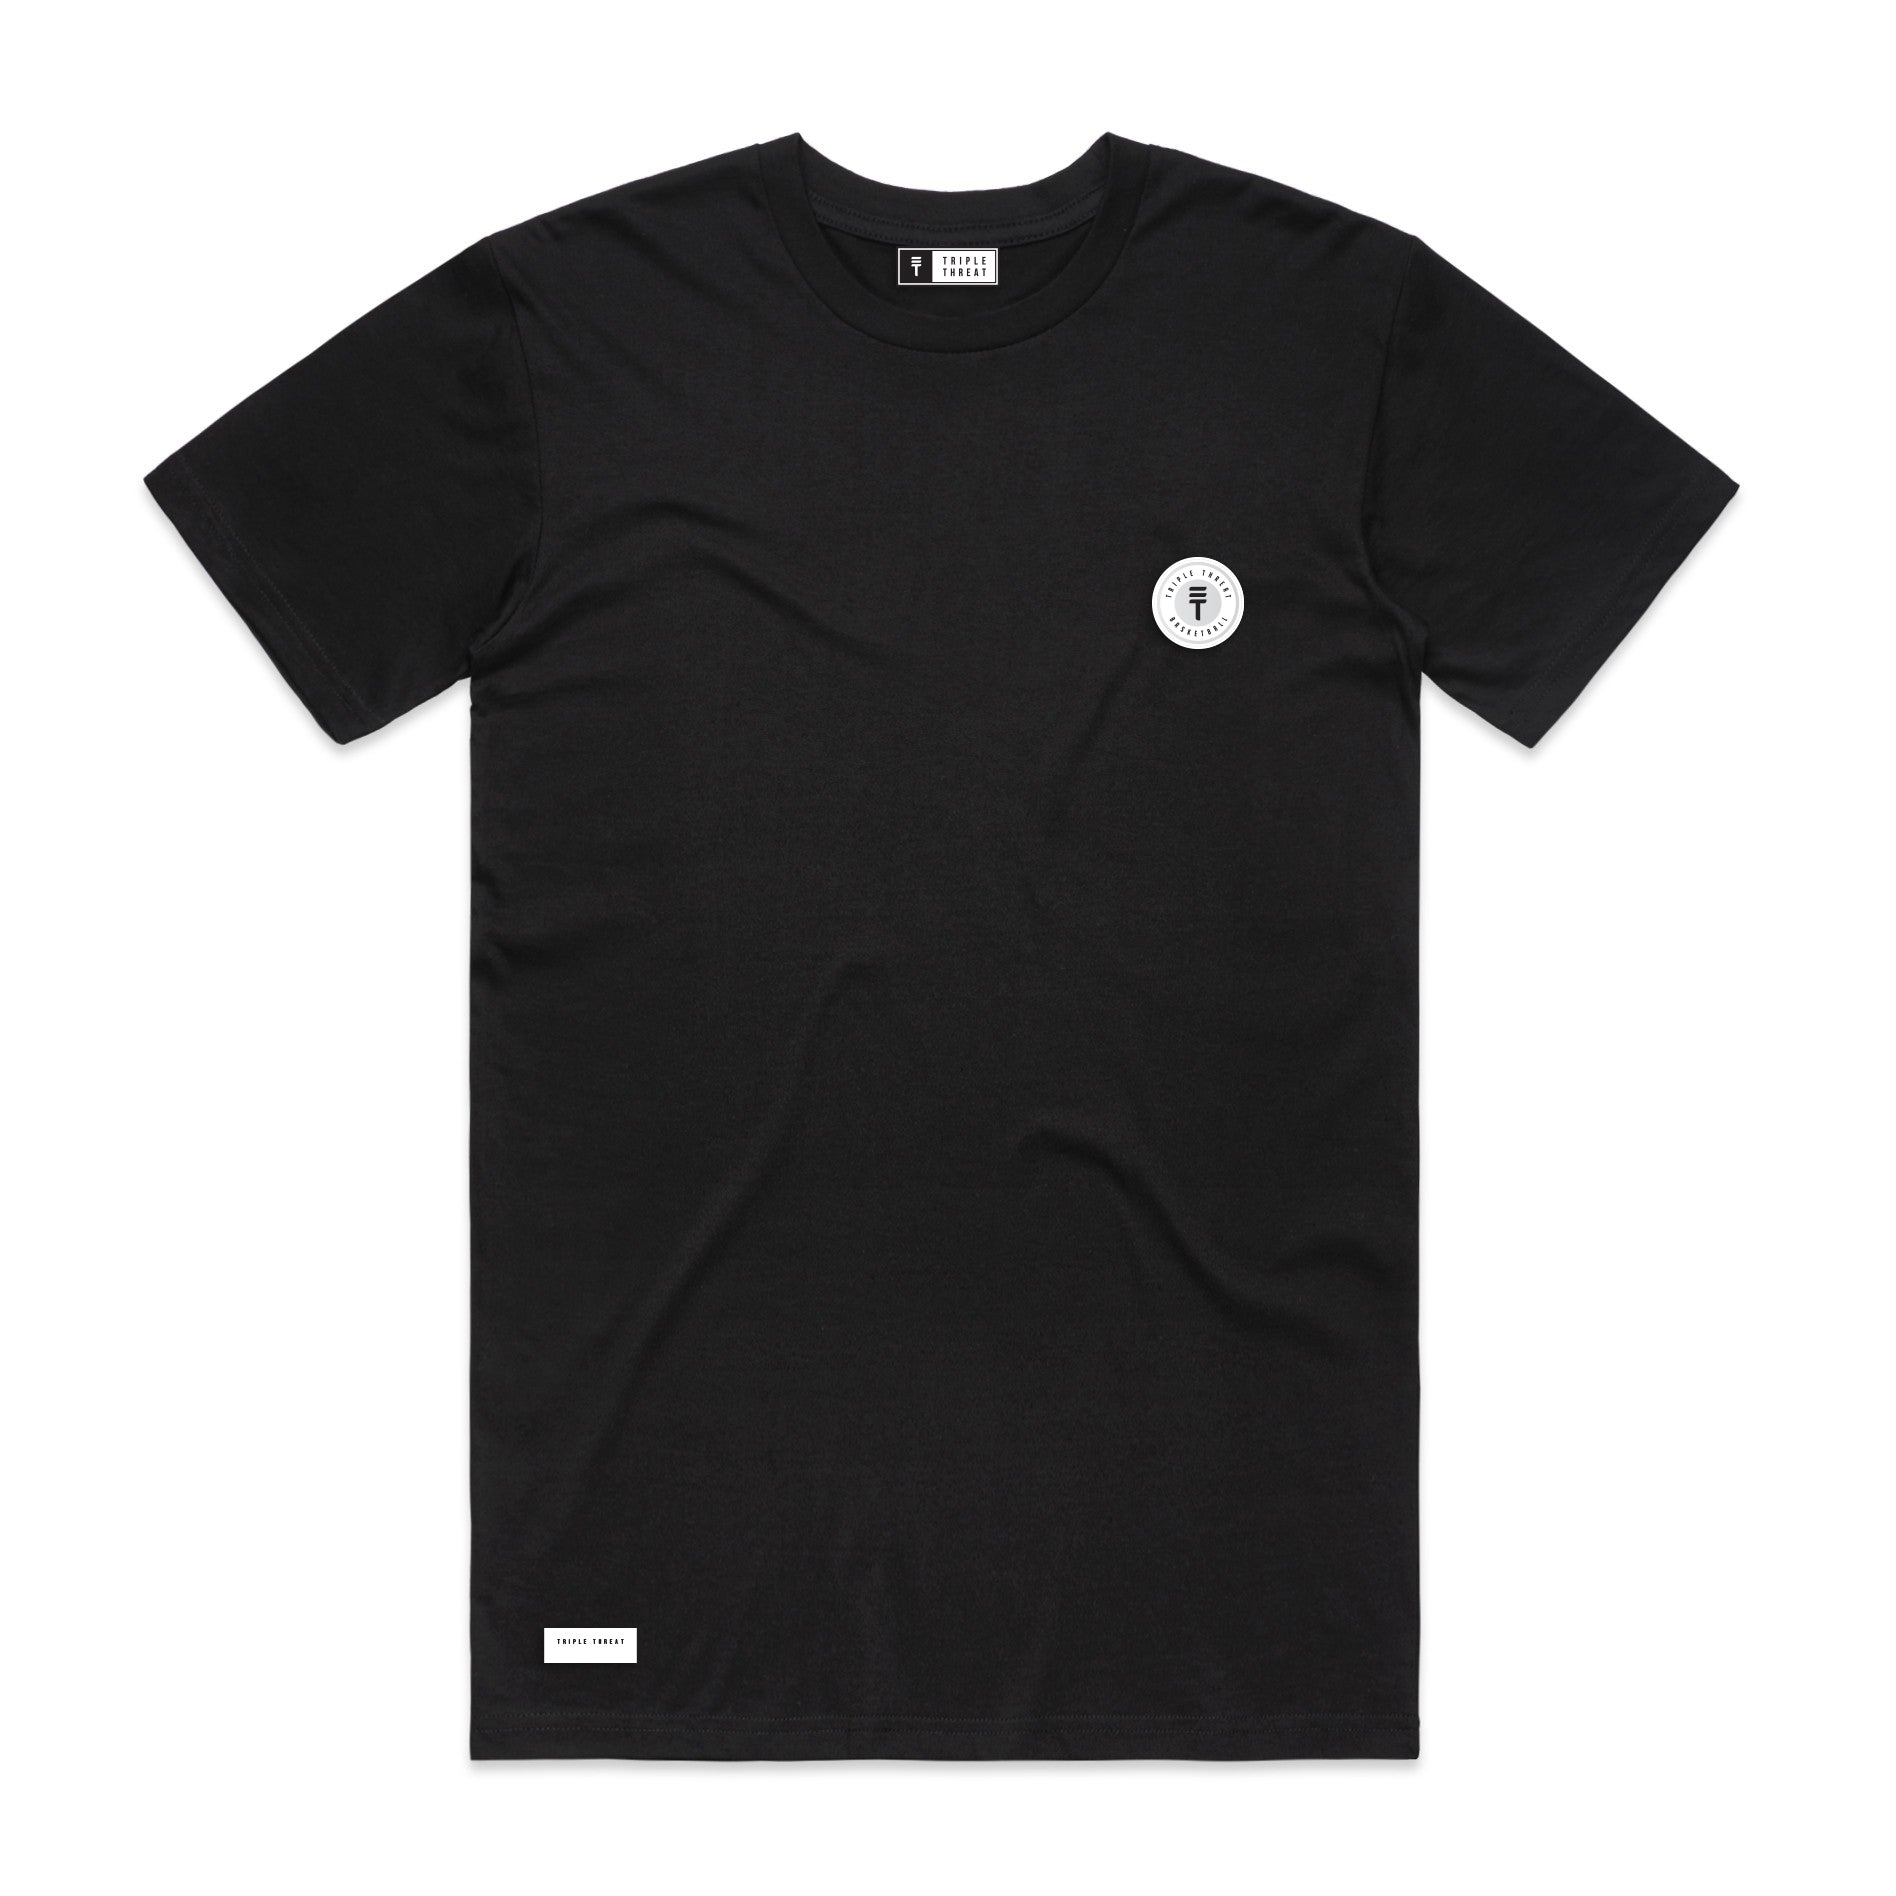 FUNDAMENTAL BADGE T-SHIRT - BLACK